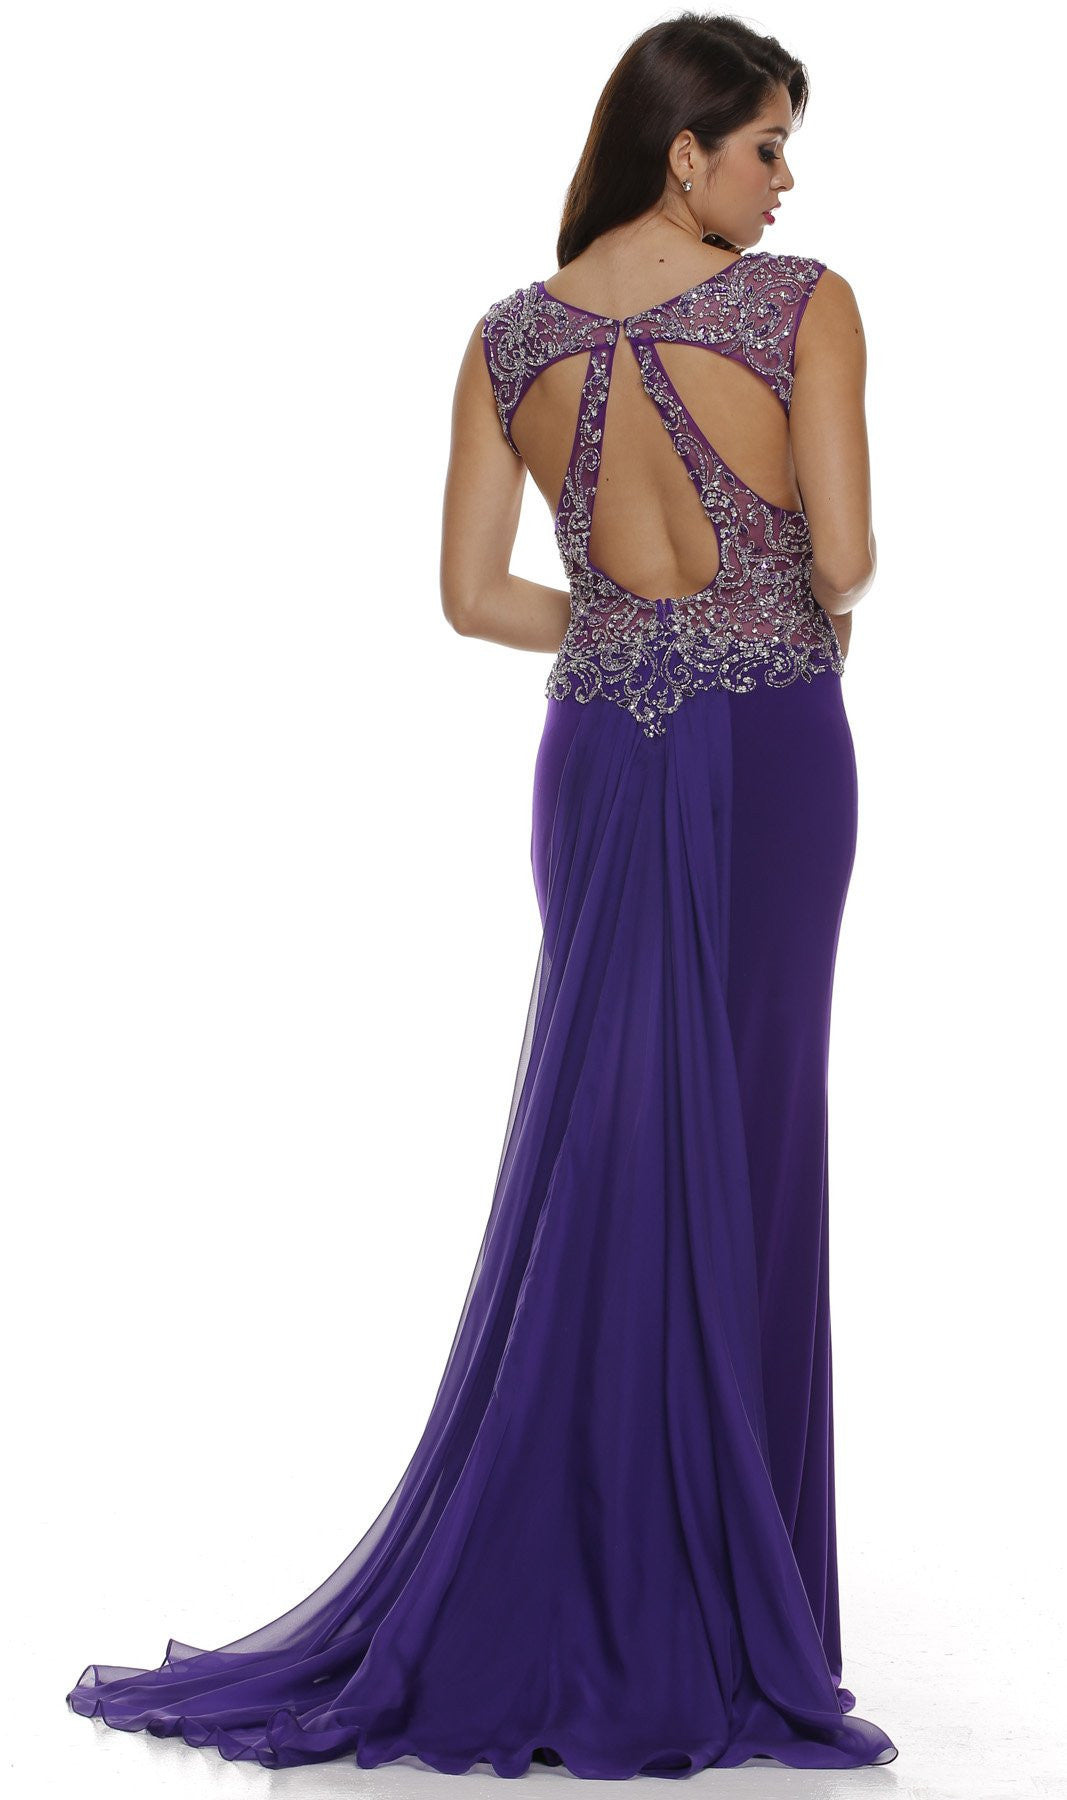 Keyhole Back Thigh Slit Purple Studded Party Gown Back